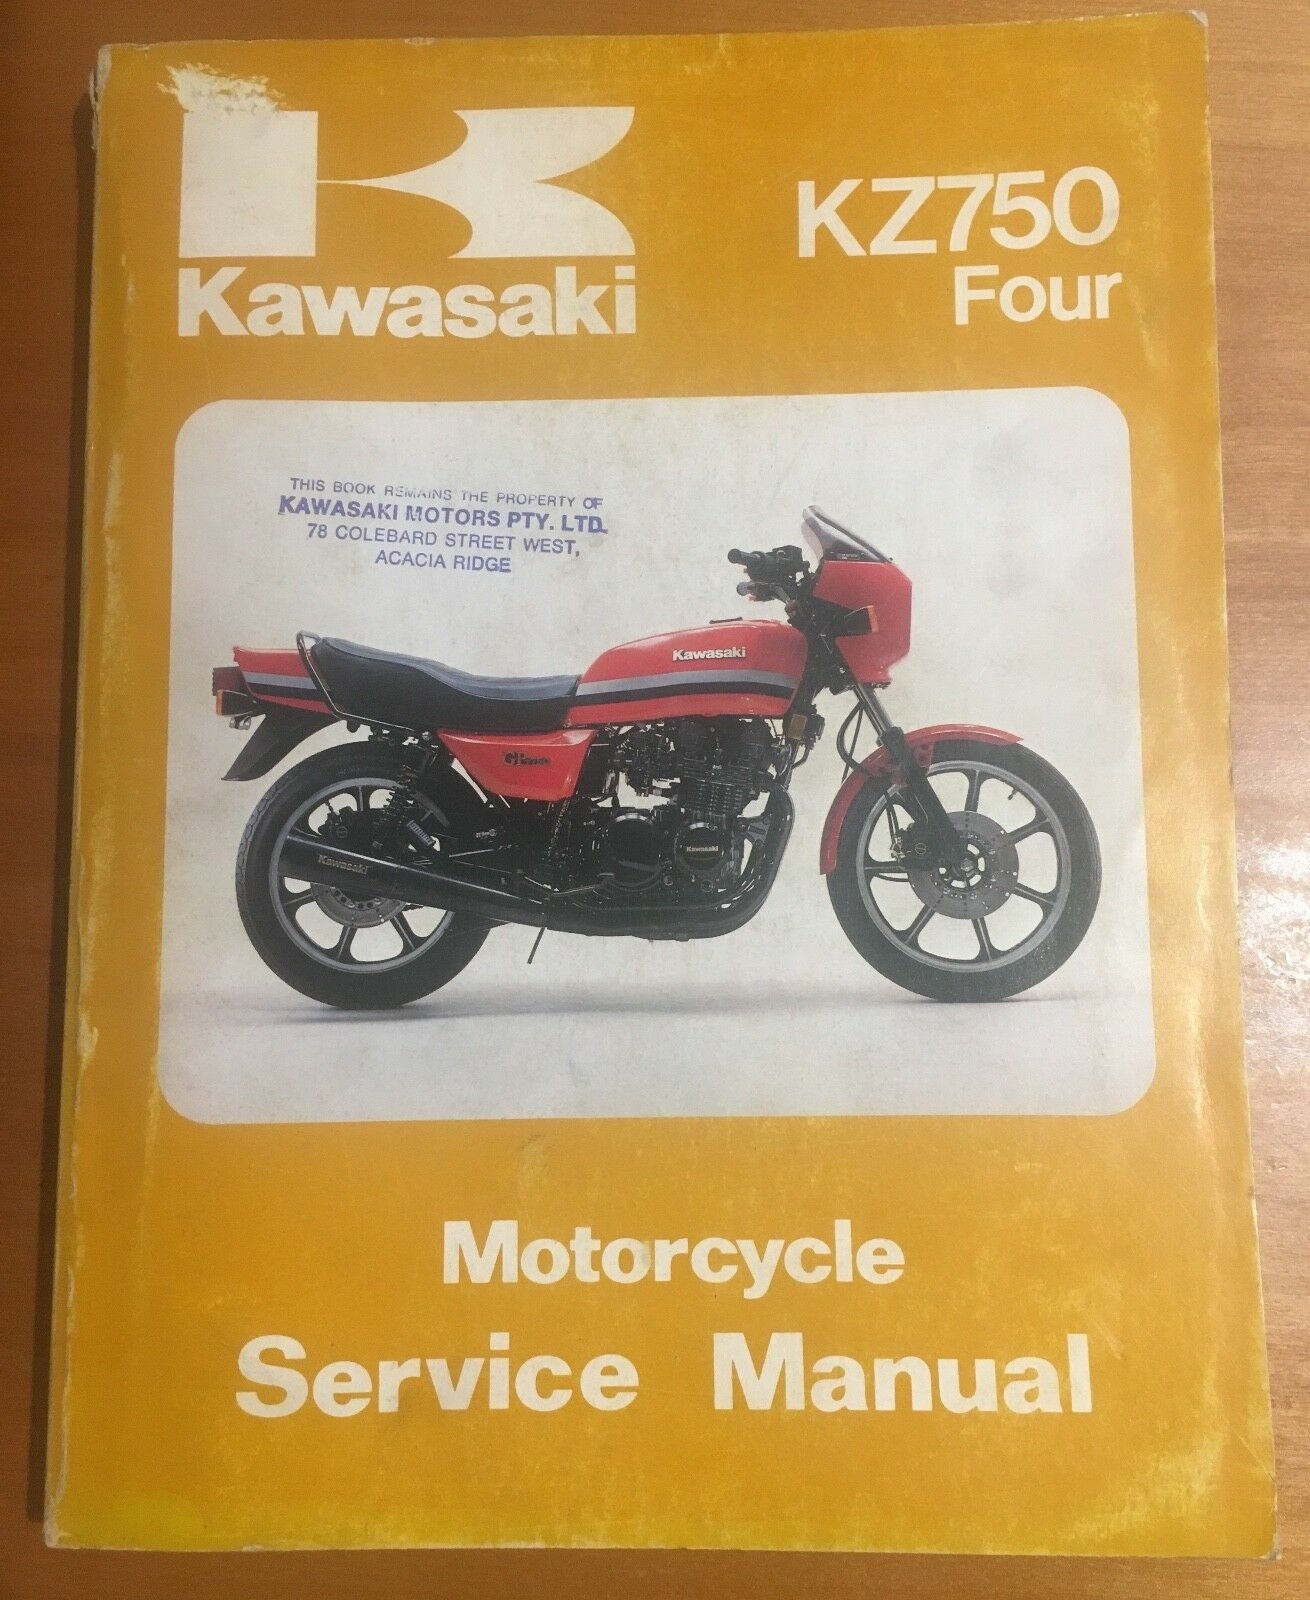 1982 Kz750 Manual Four Wiring Diagram Original To Kawasaki Motorcycle Factory Service 1310x1600